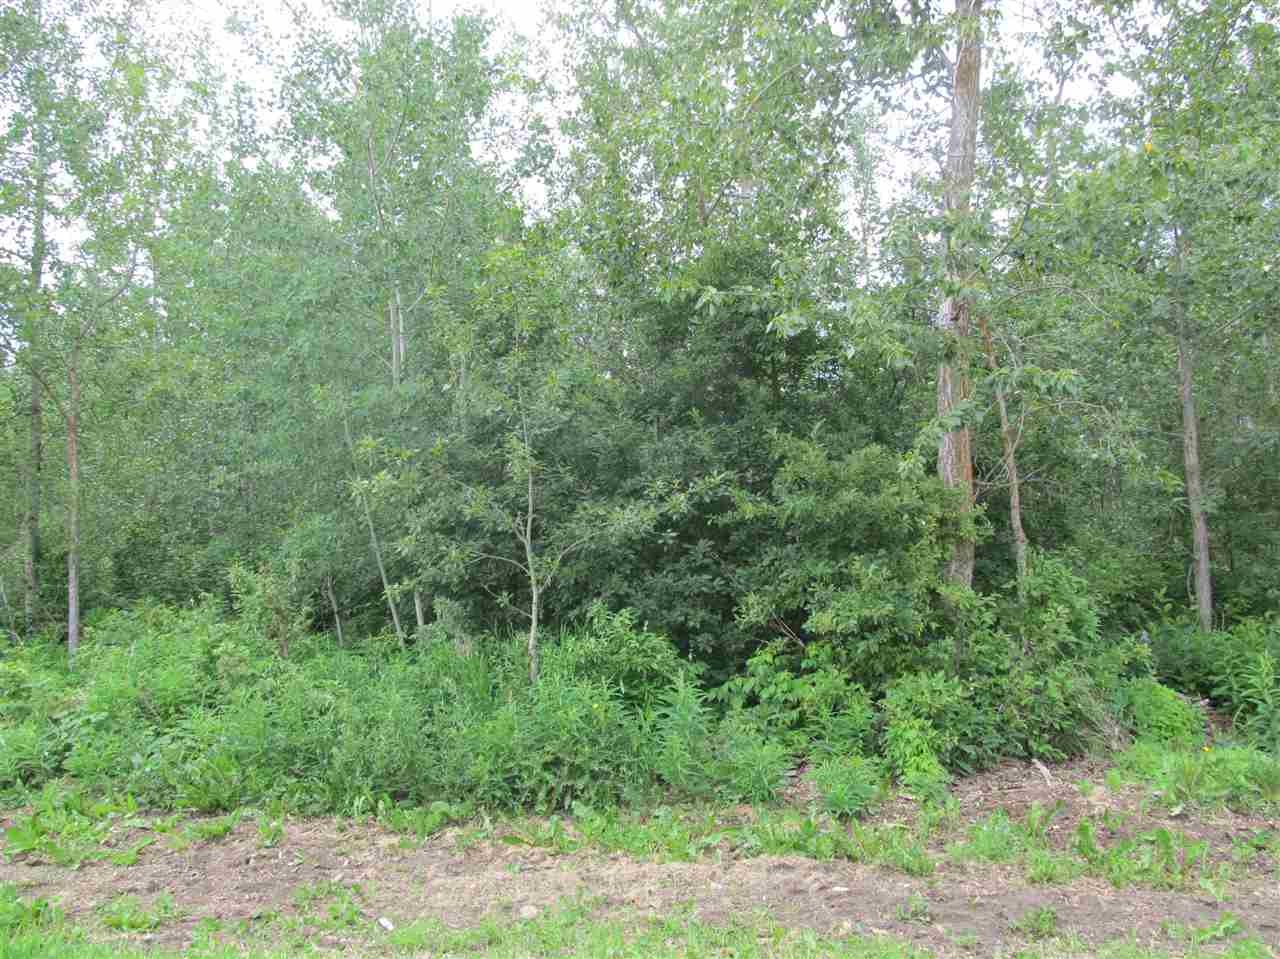 Photo 3: 453 Lakeview Drive: Rural Lac Ste. Anne County Rural Land/Vacant Lot for sale : MLS® # E4046326